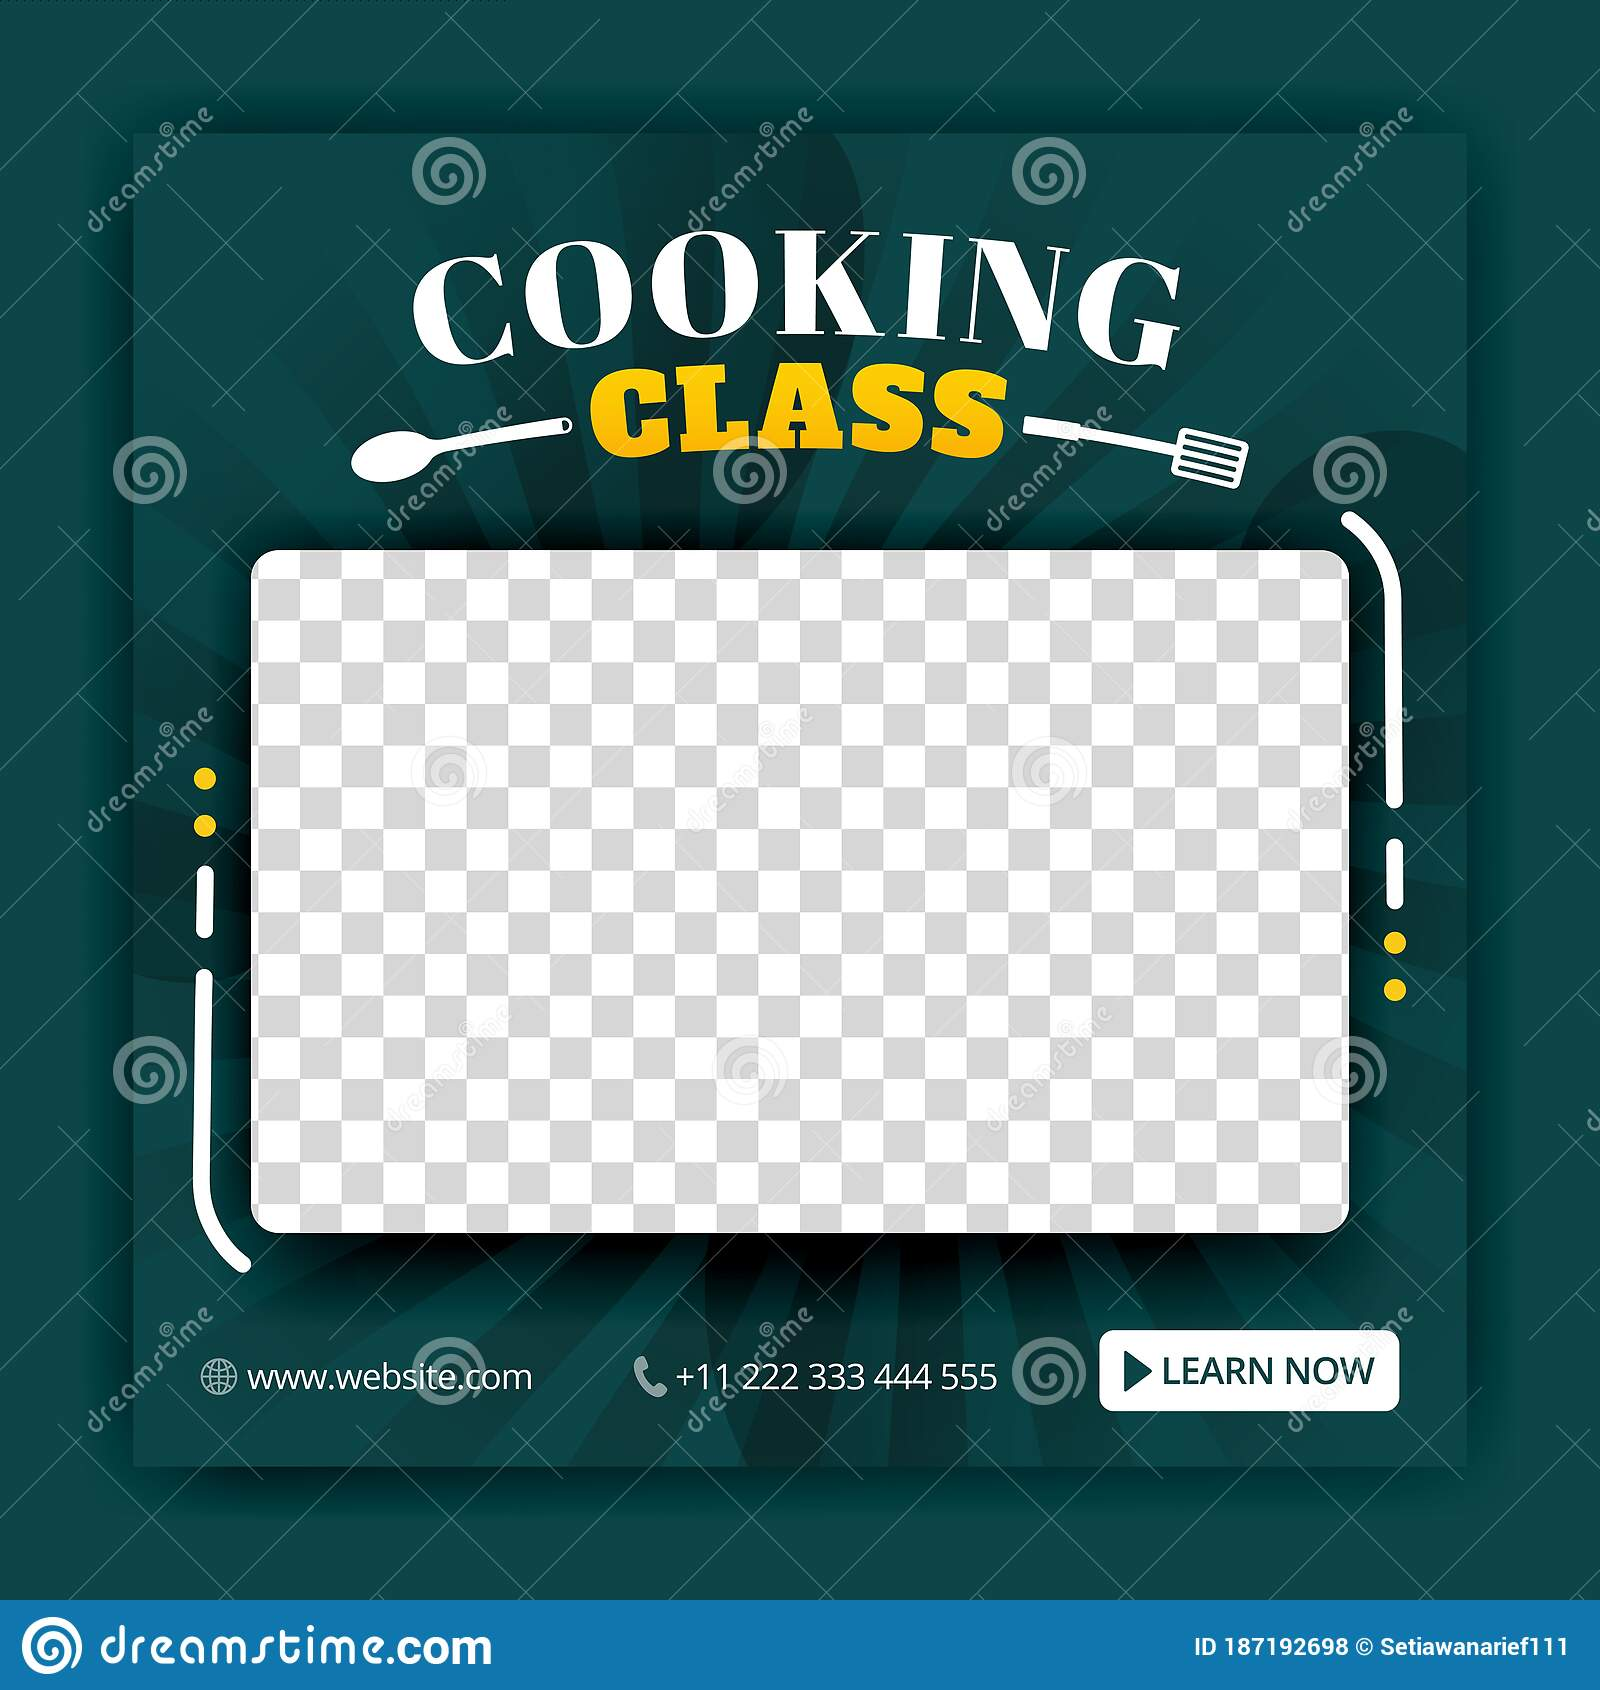 Cooking Class Flyer Template from thumbs.dreamstime.com